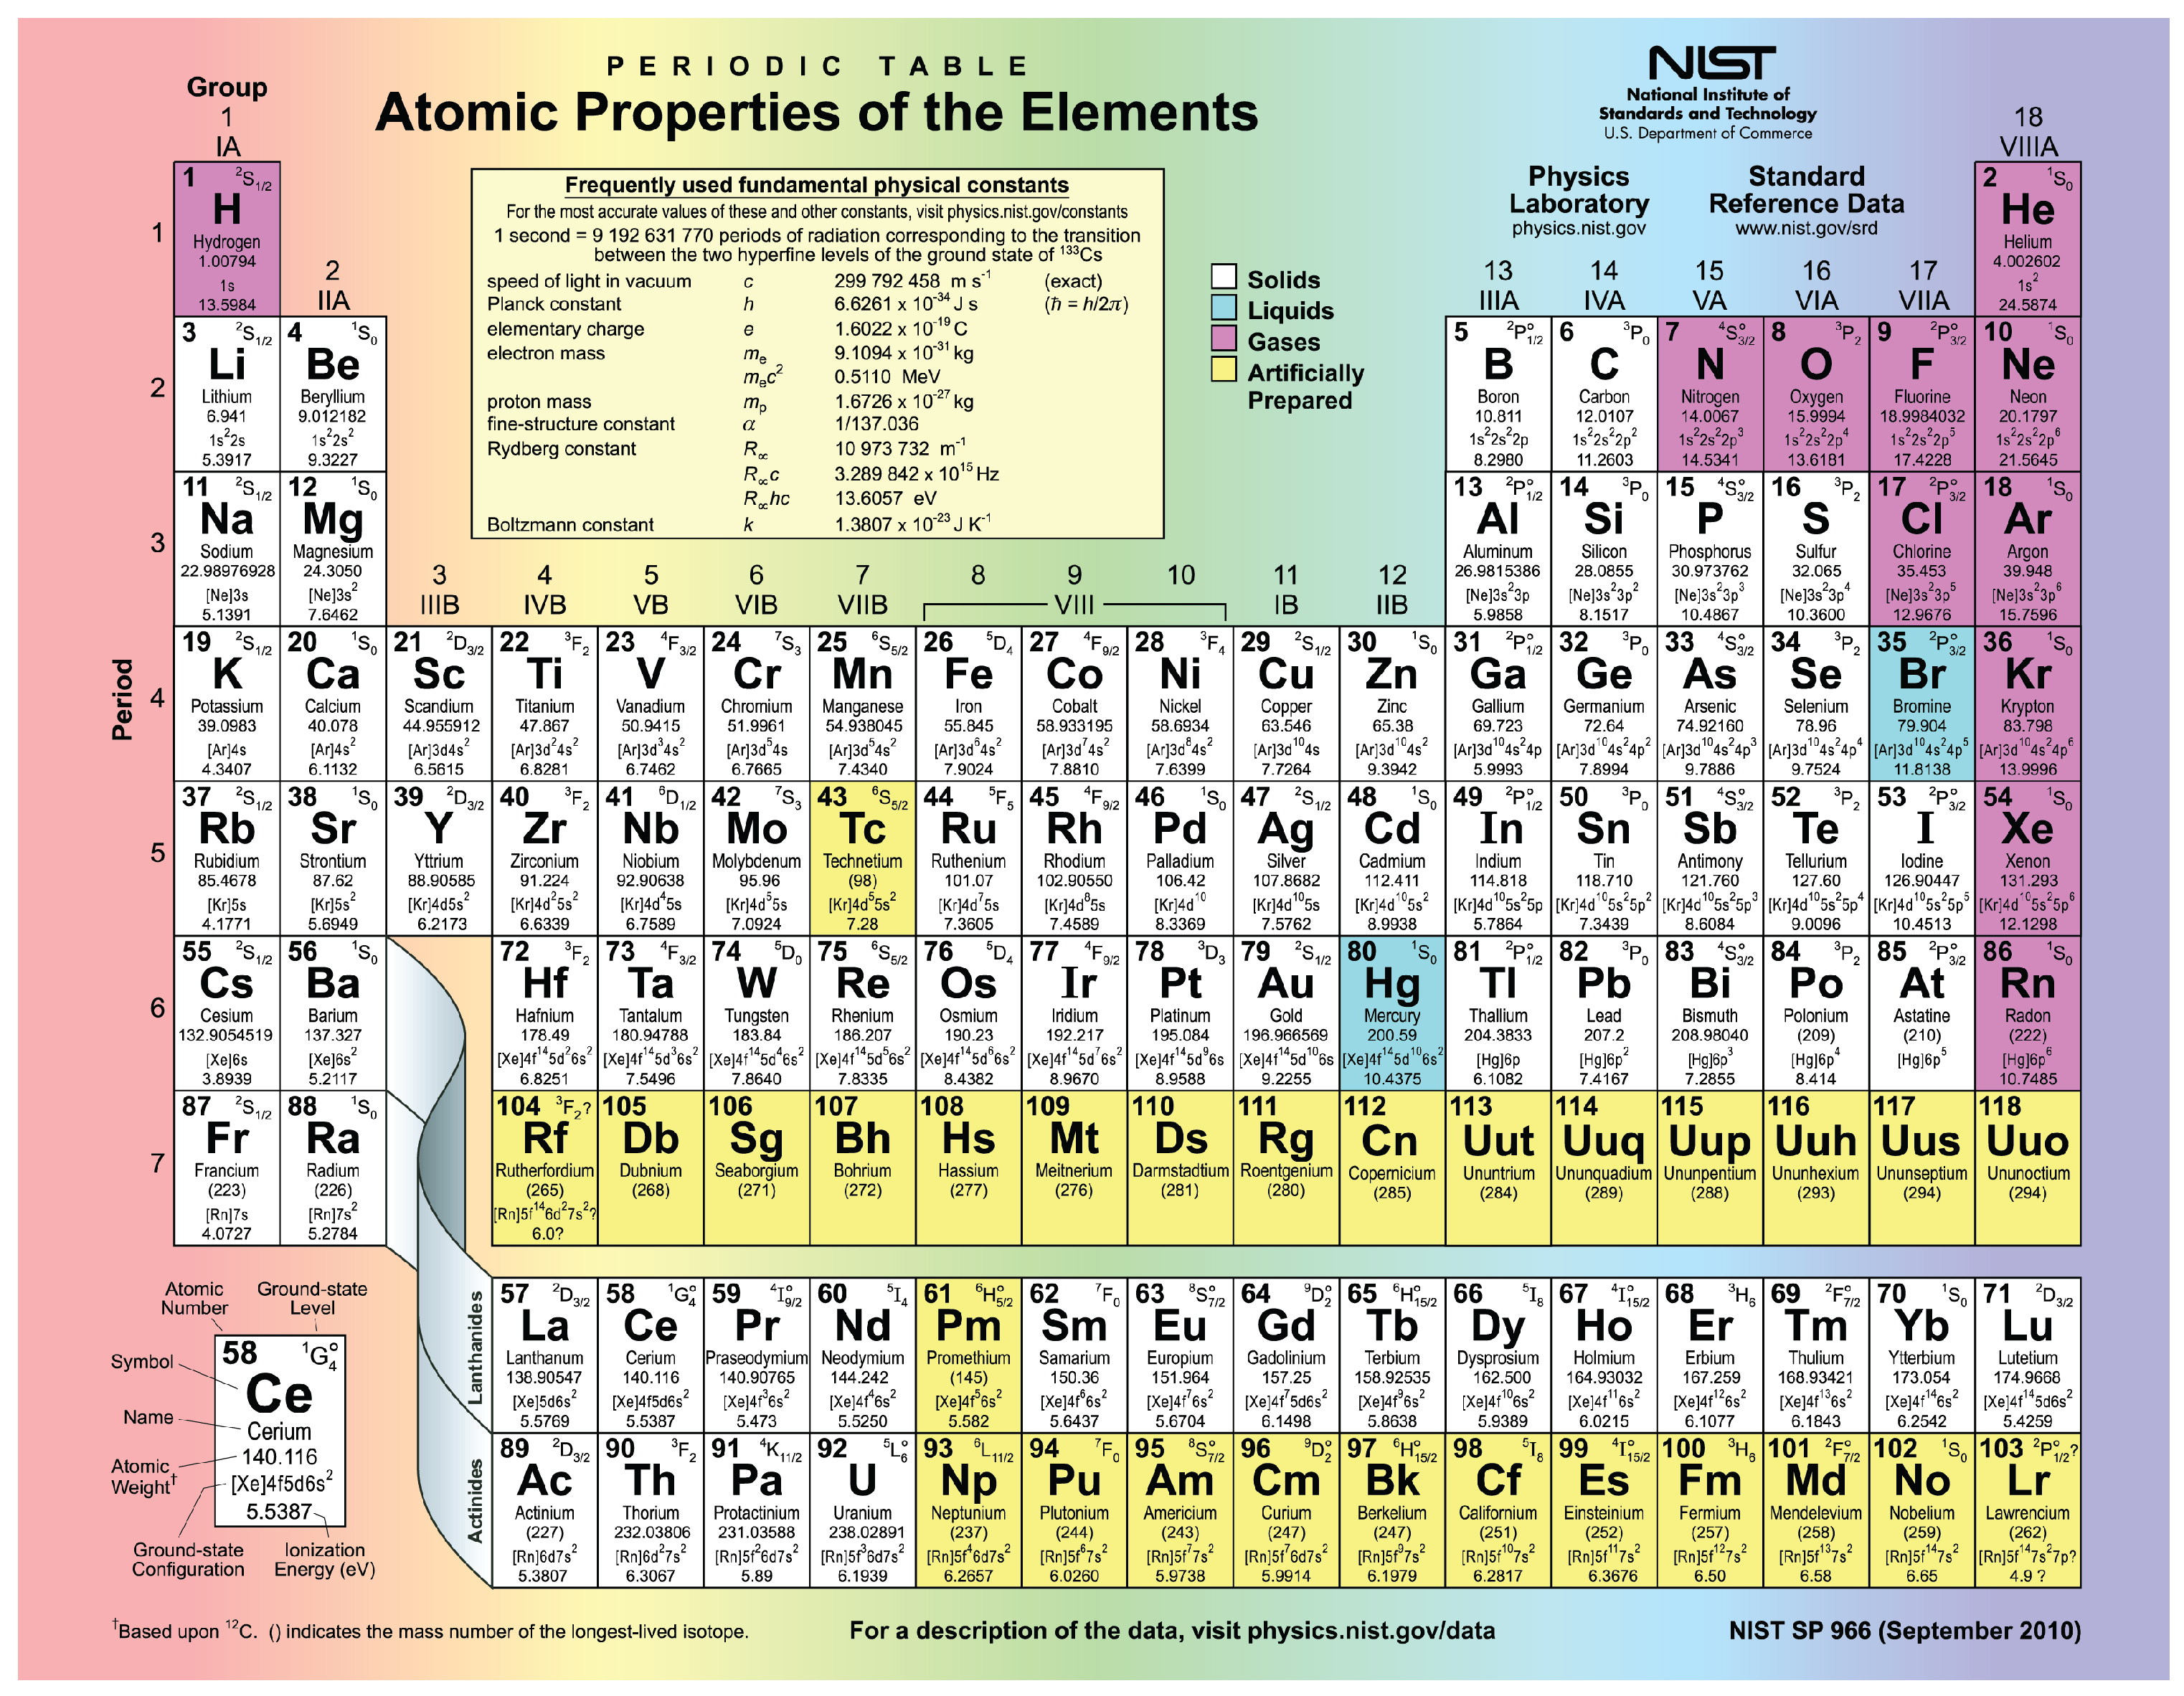 This figure shows the periodic table.